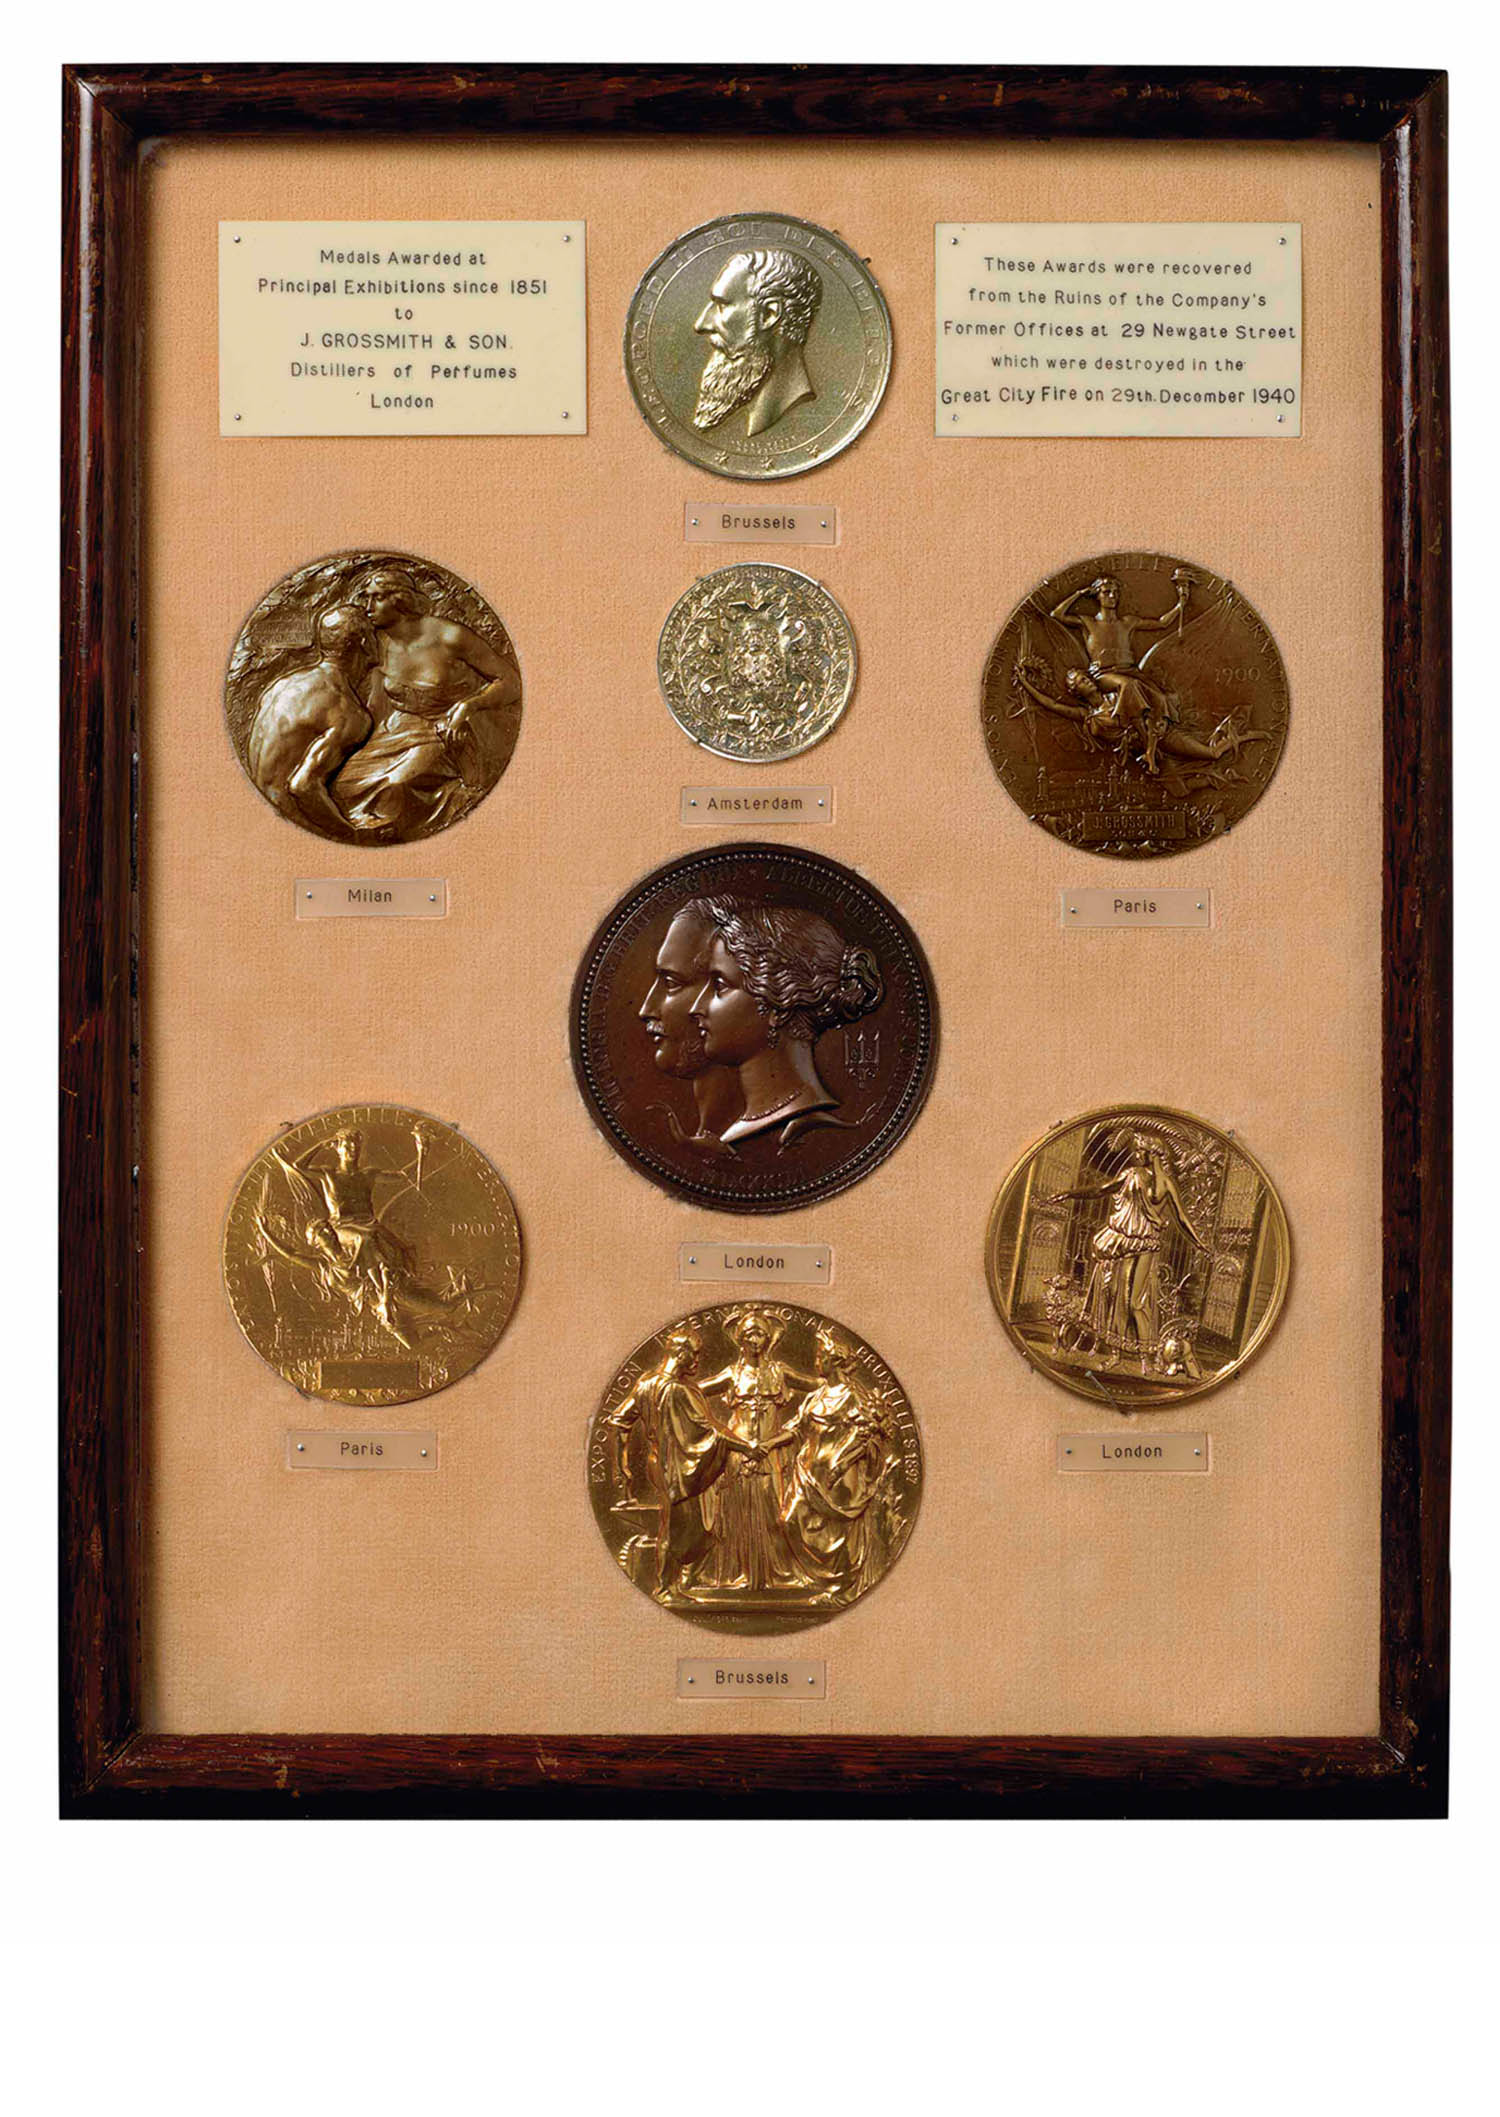 Medals awarded to Grossmith for excellence in perfumery. Great Exhibition medal in centre